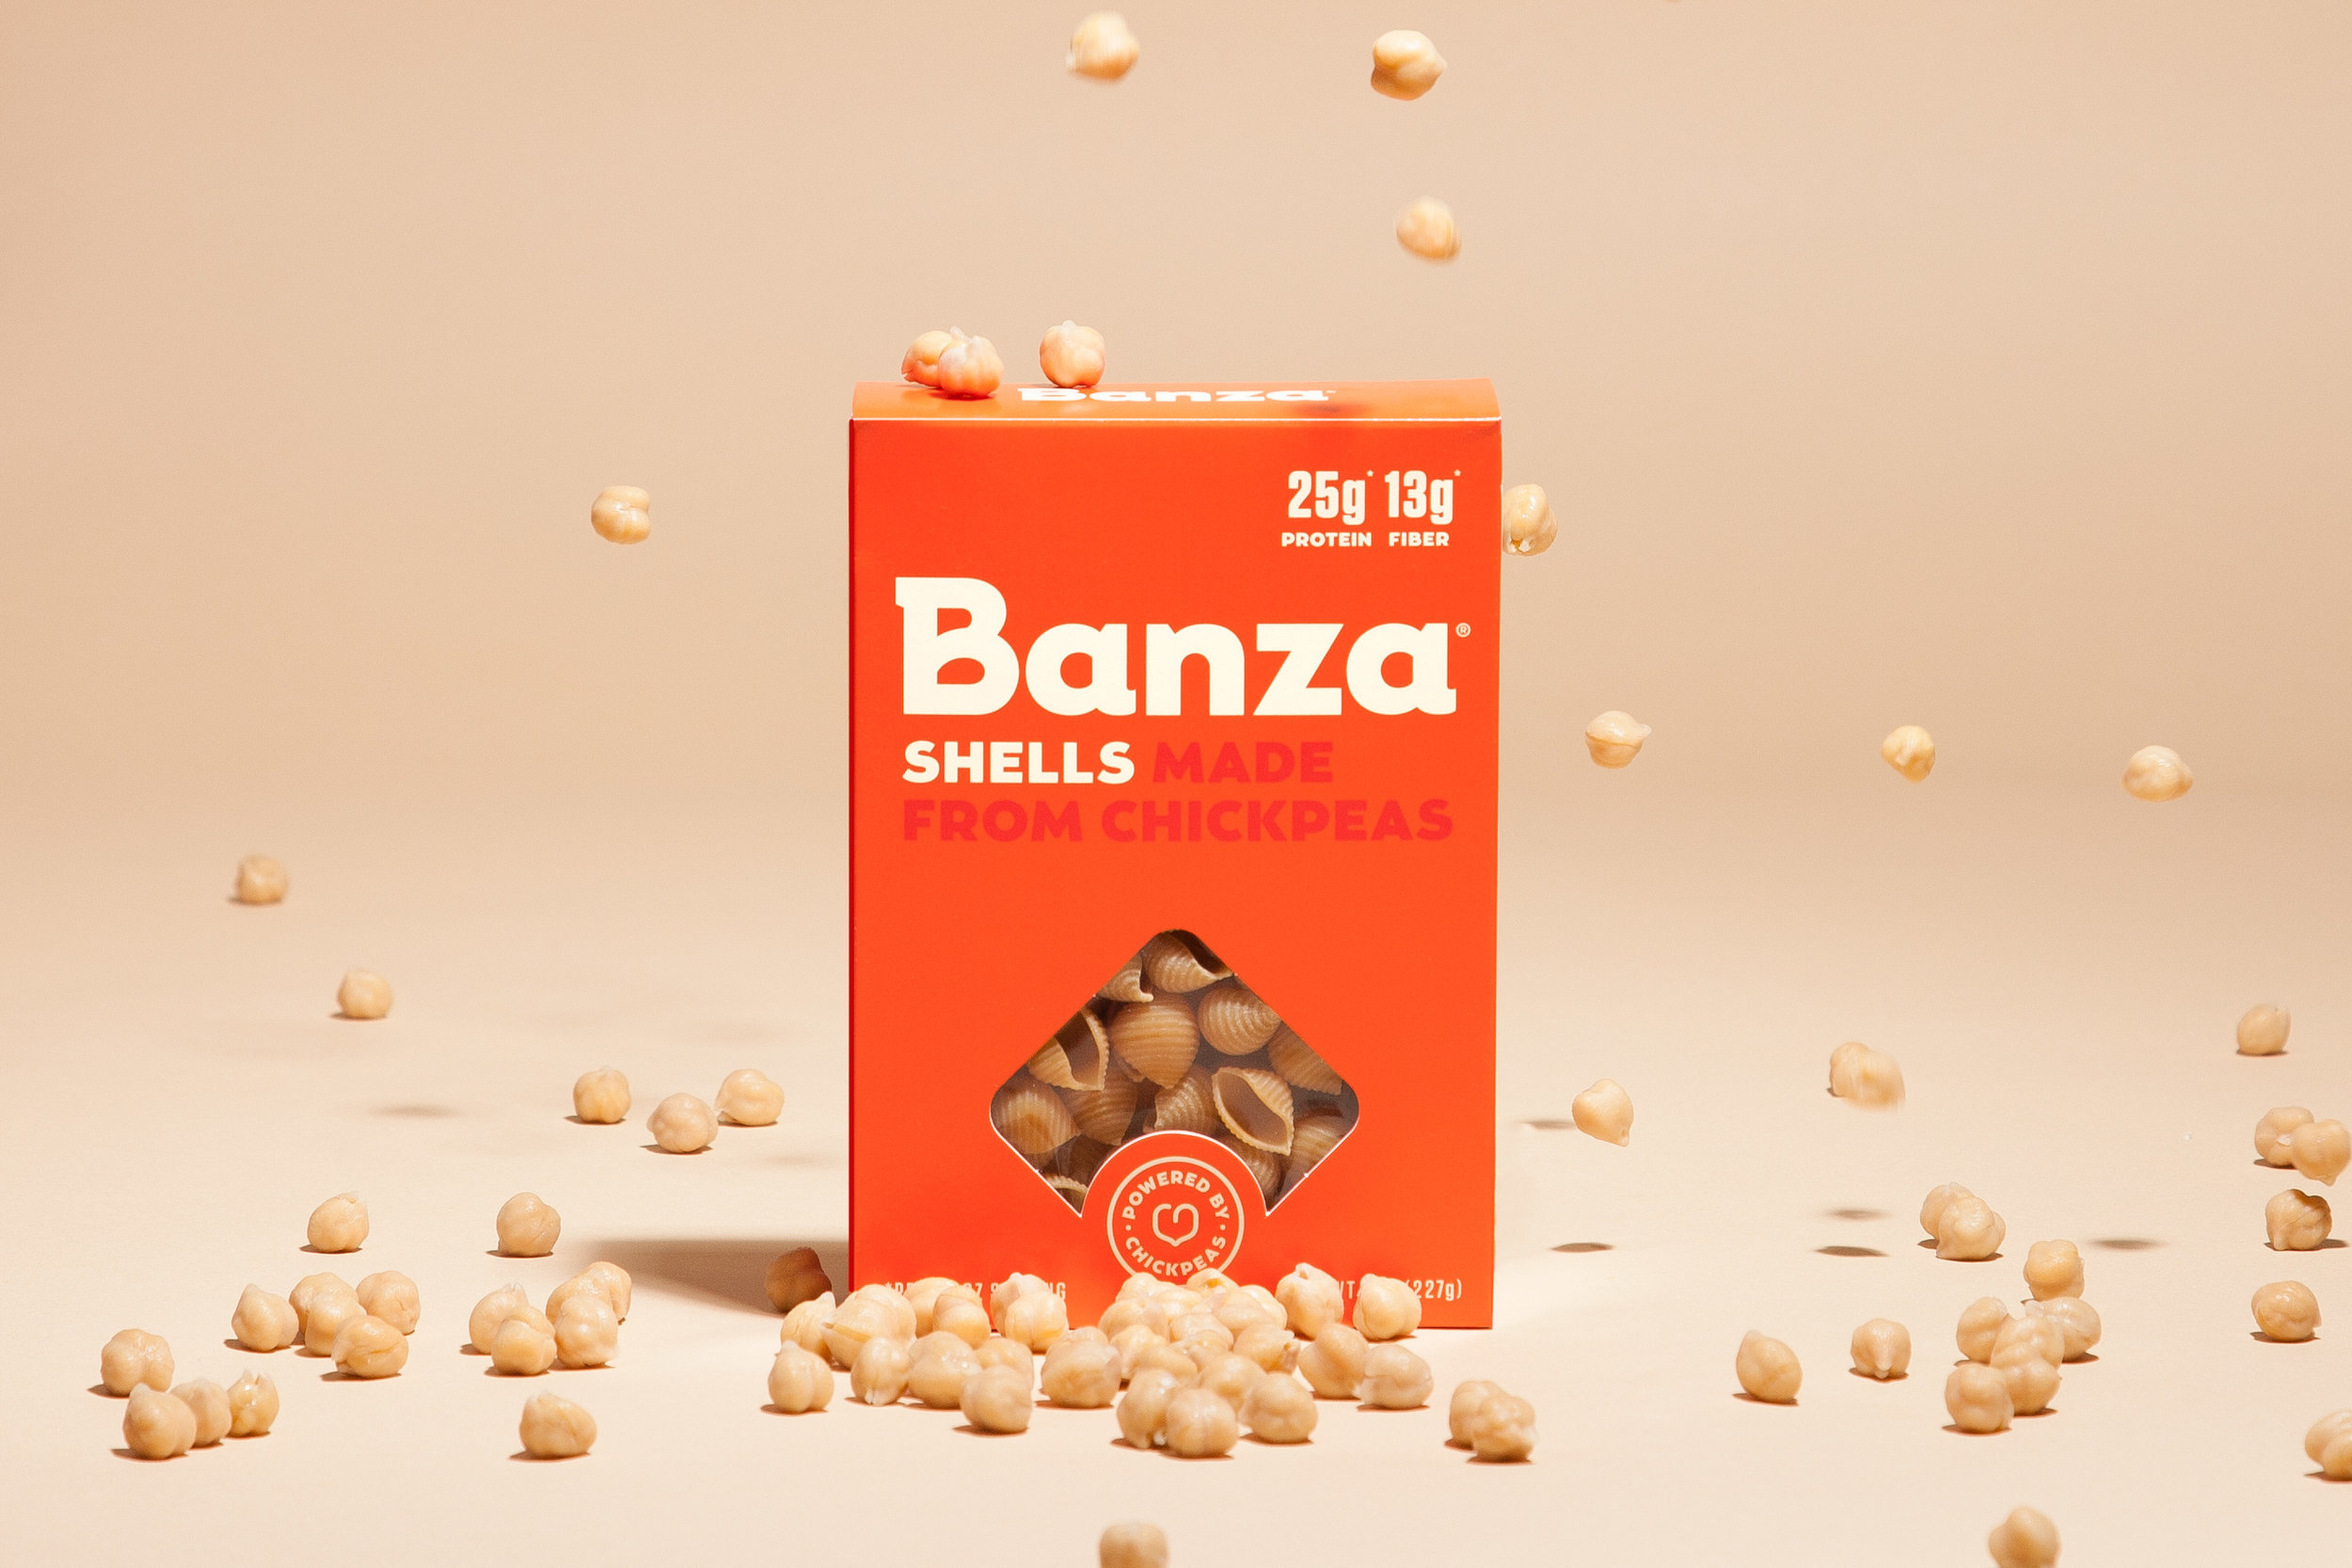 BanzaActive Investment - Banza is a delicious and nutritious protein and fiber-packed gluten-free pasta powered by chickpeas. Banza offers 2x the protein, 4x the fiber and ½ the net carbs of regular pasta.www.eatbanza.com